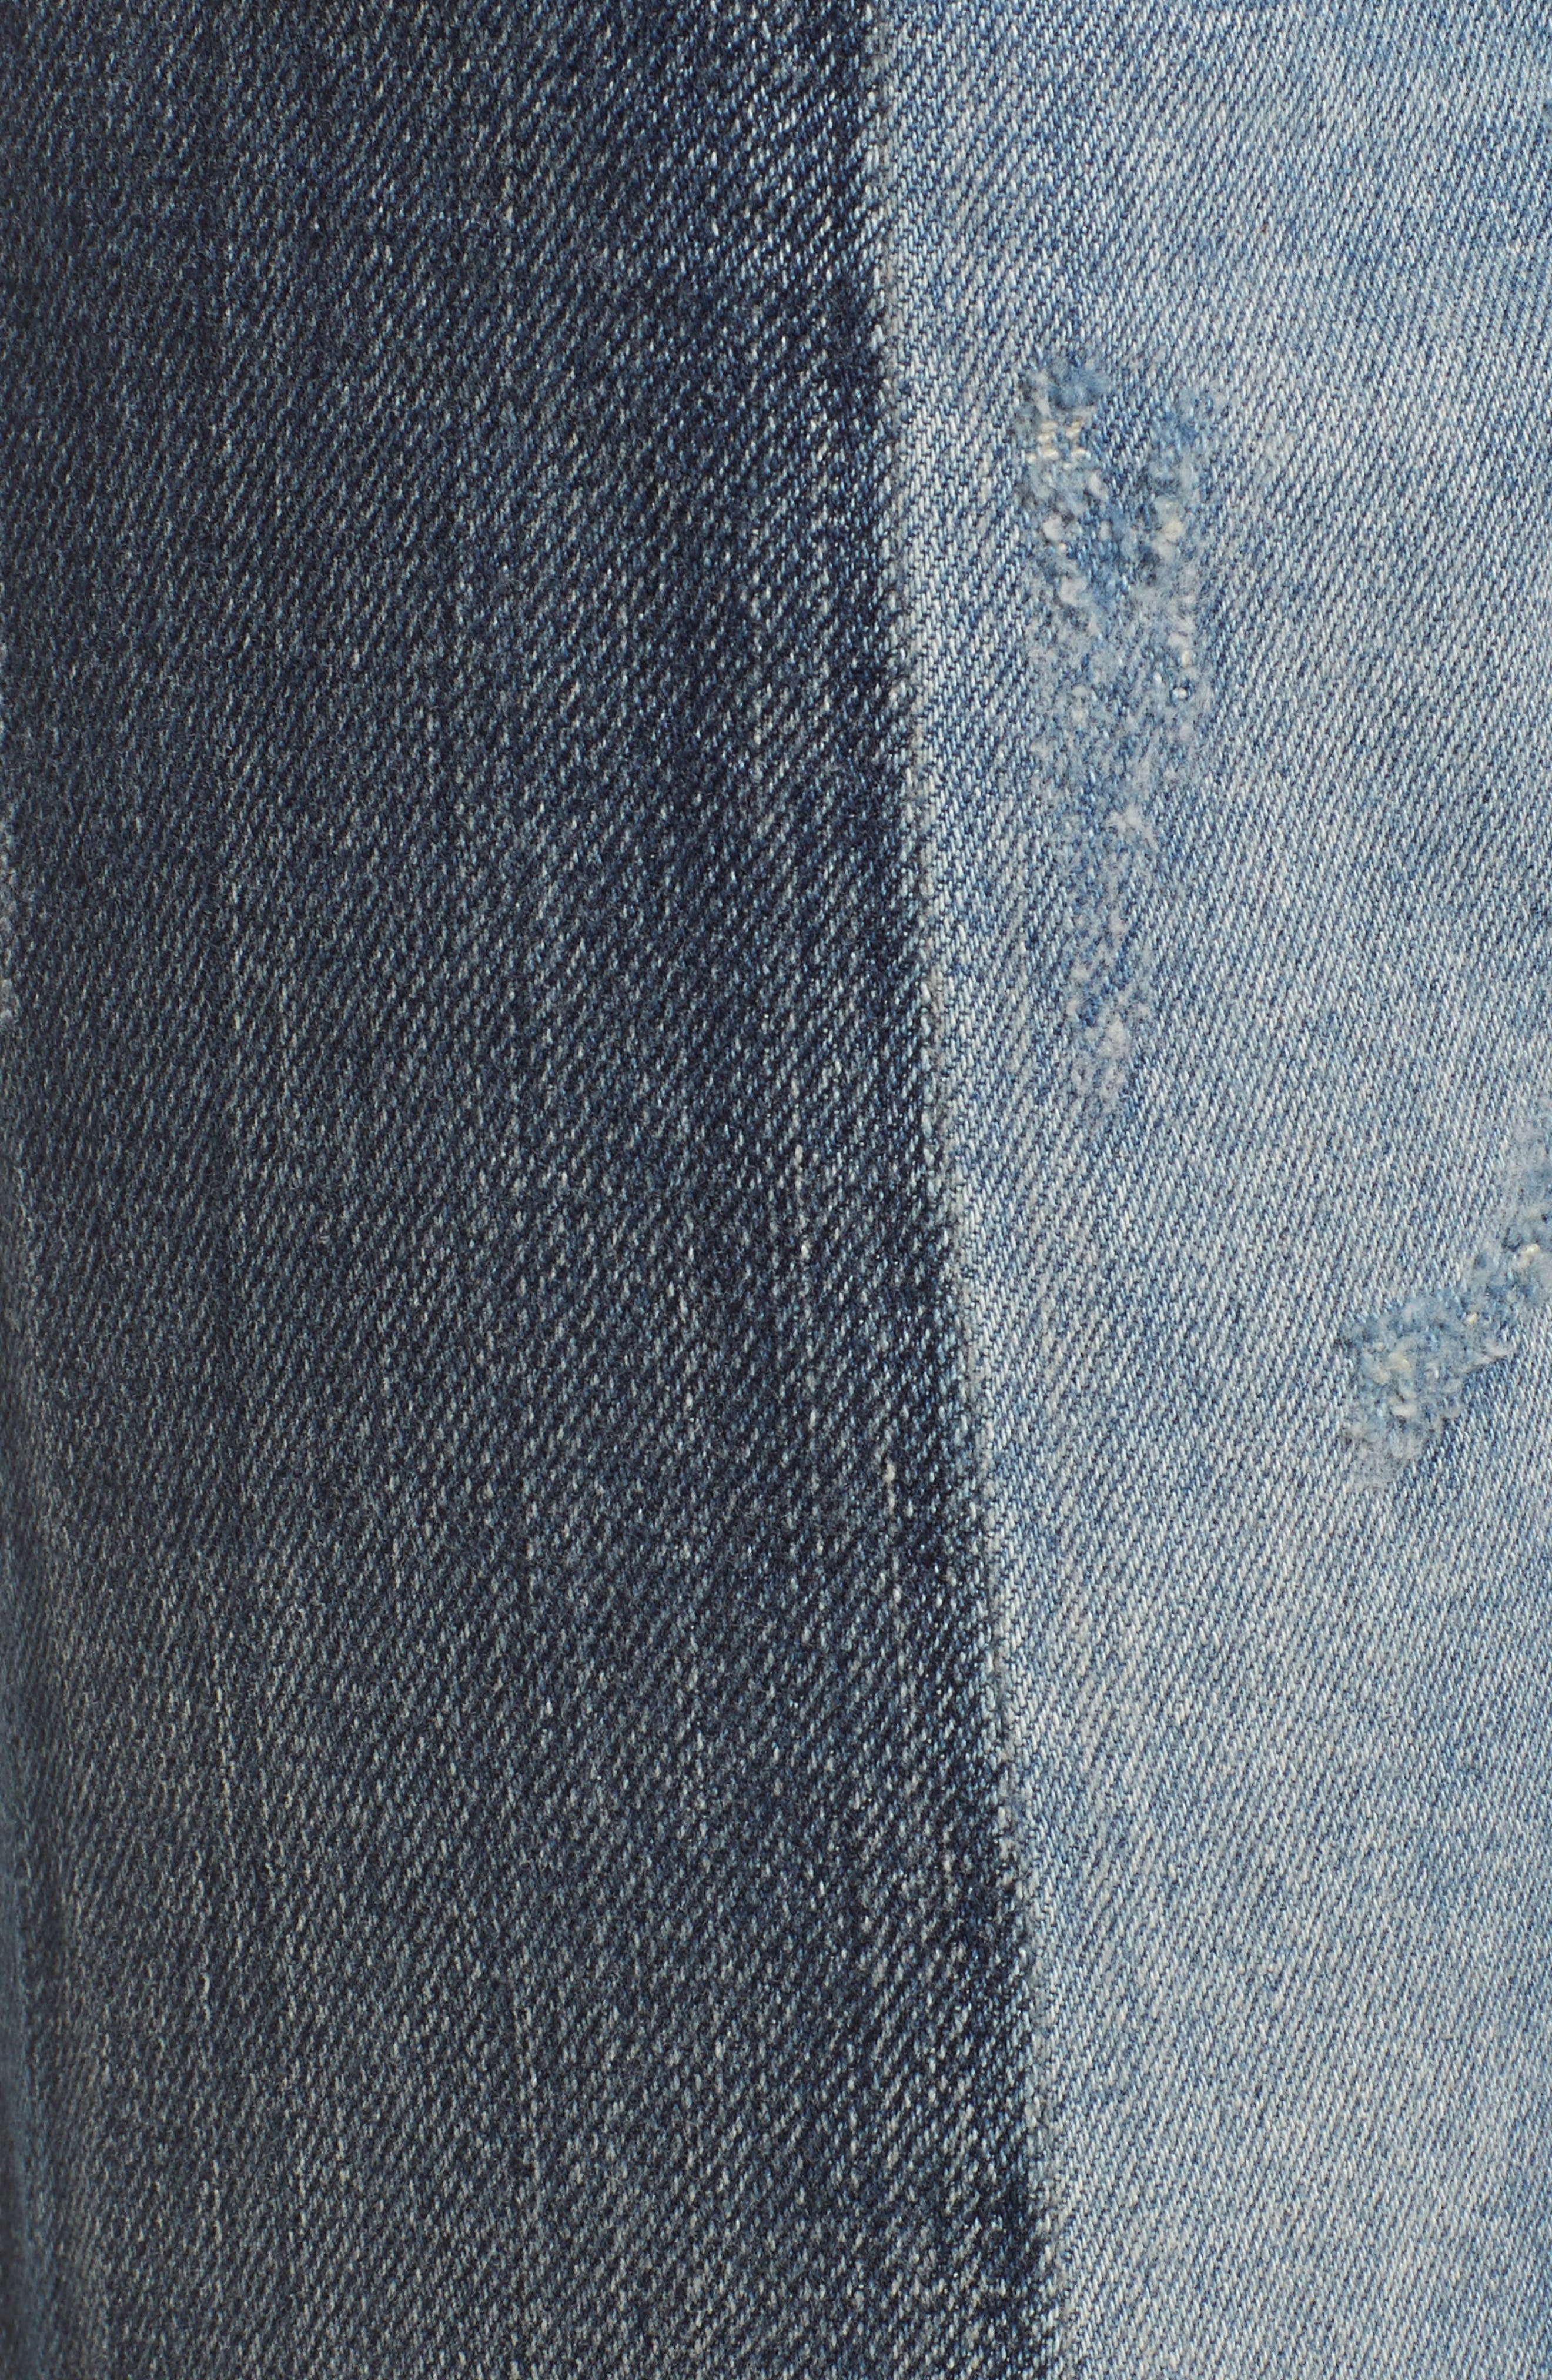 Alternate Image 5  - 7 For All Mankind® High Waist Patched Slim Jeans (Indigo Patches)